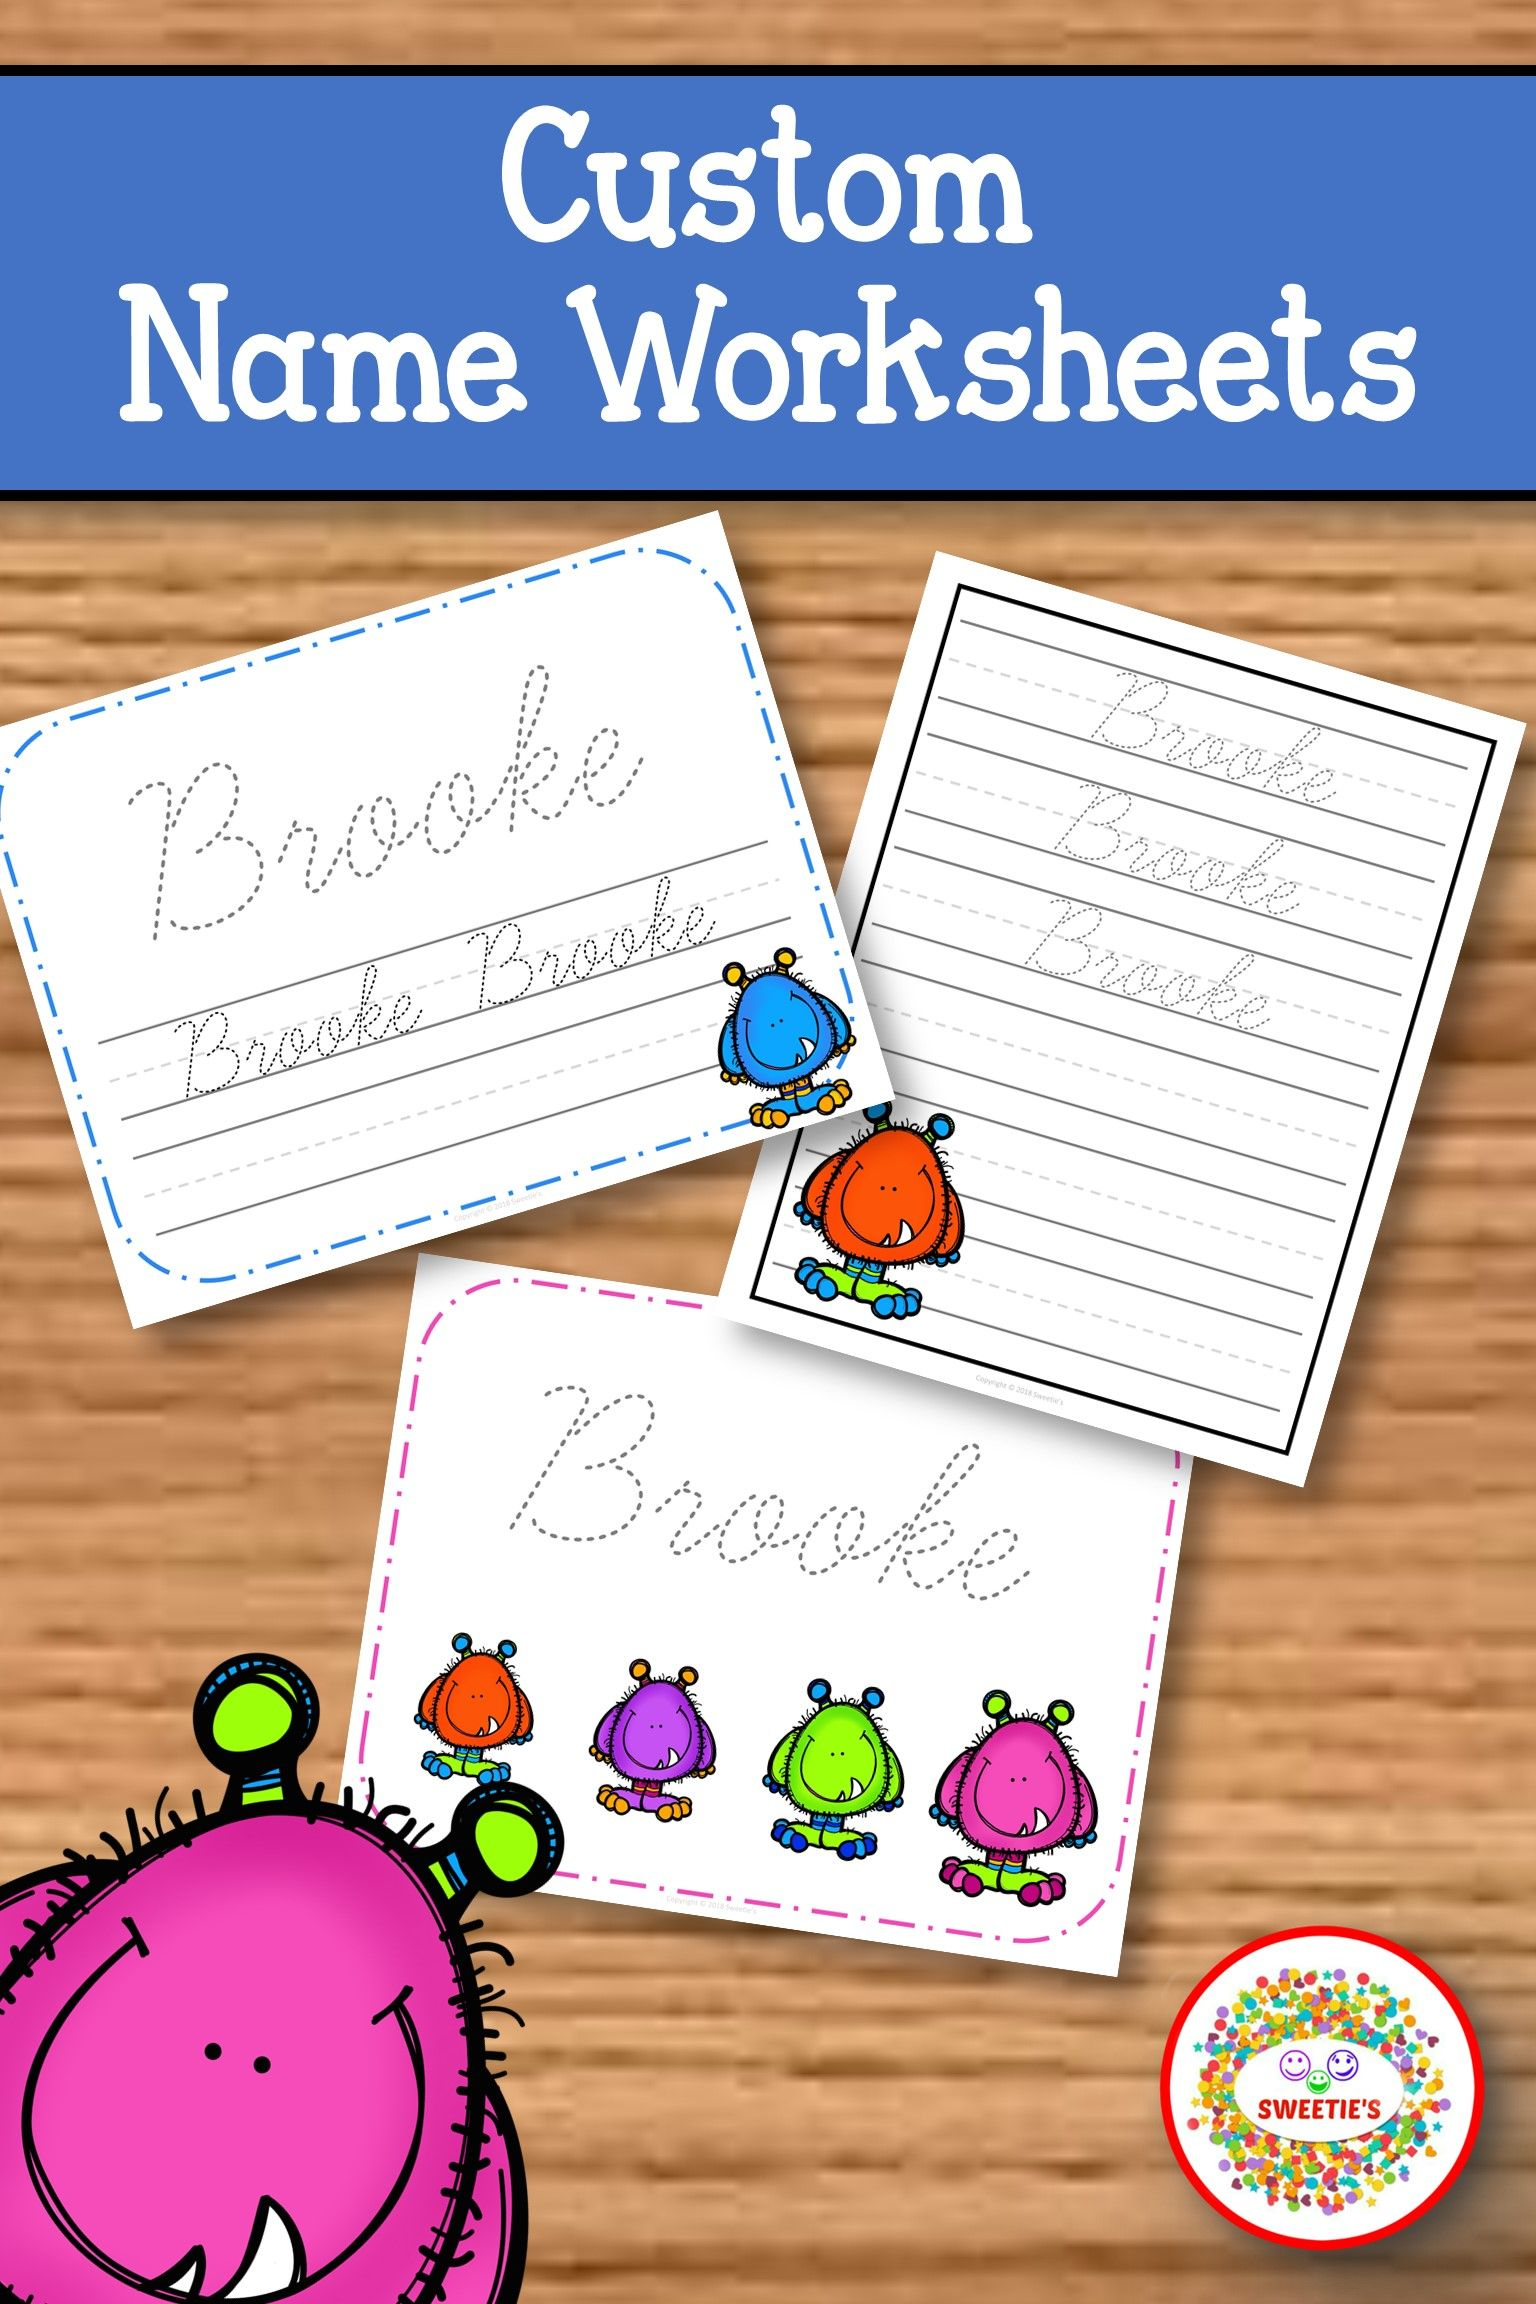 Teach Your Little One To Write His Her Name With These